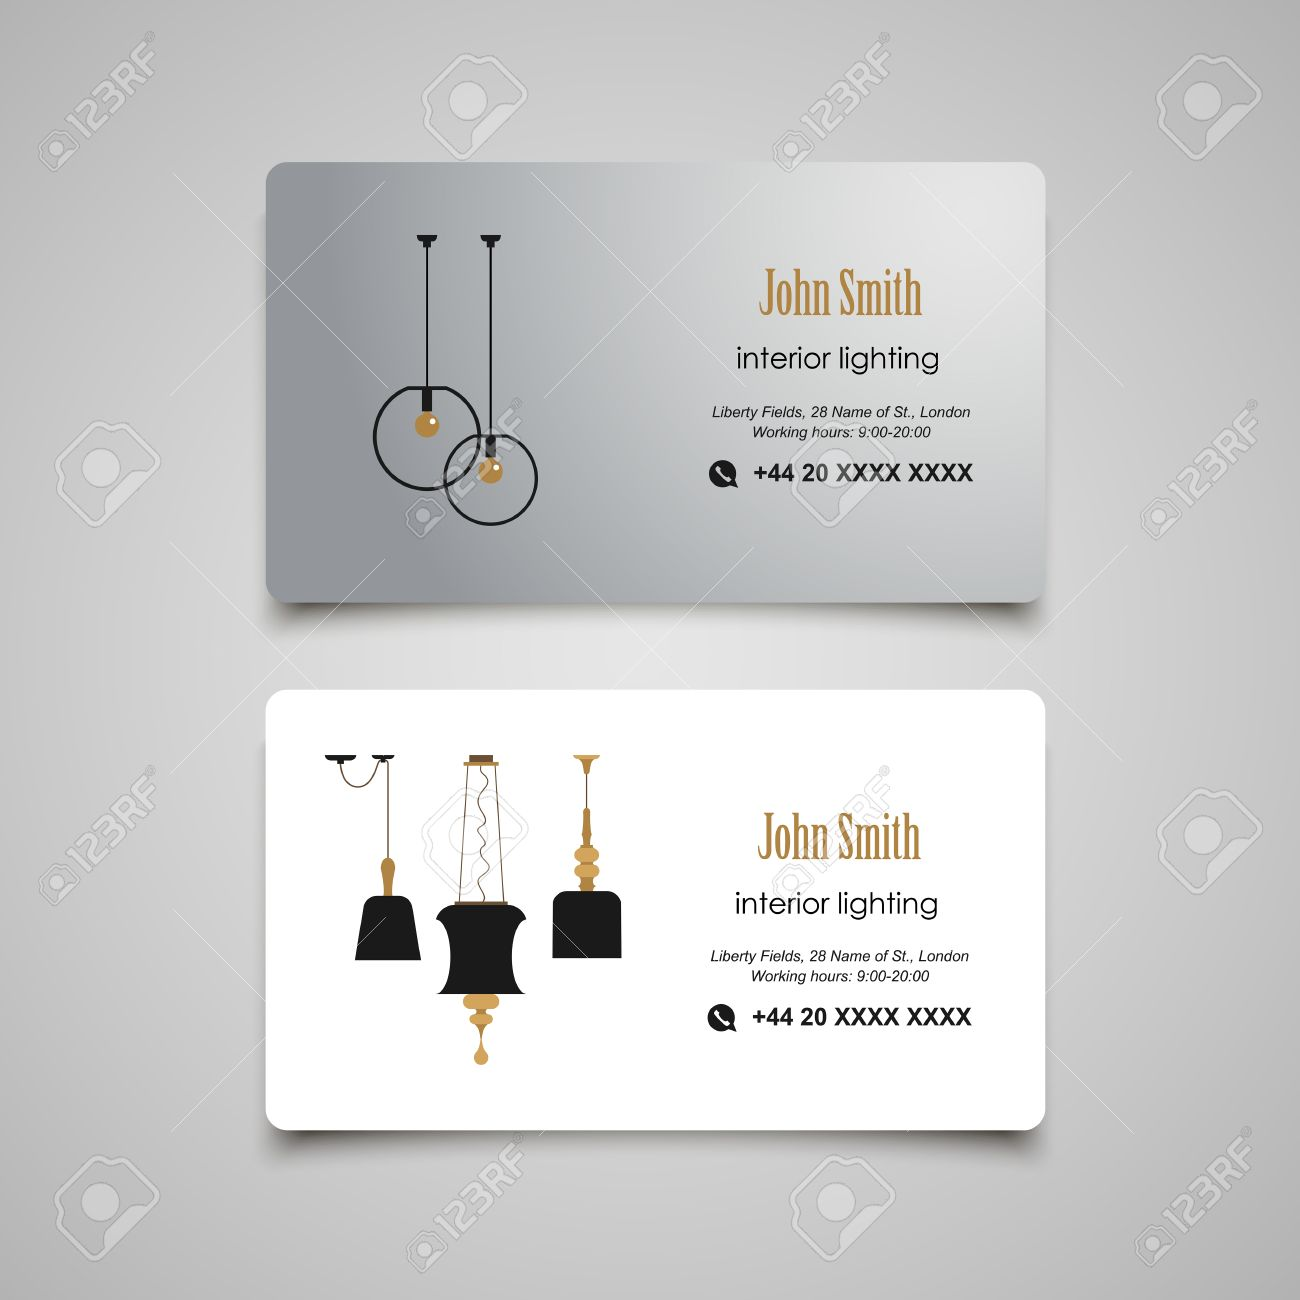 Interior design business cards best business card maker design top interior and furniture designer business card template royalty with interior design business cards reheart Gallery